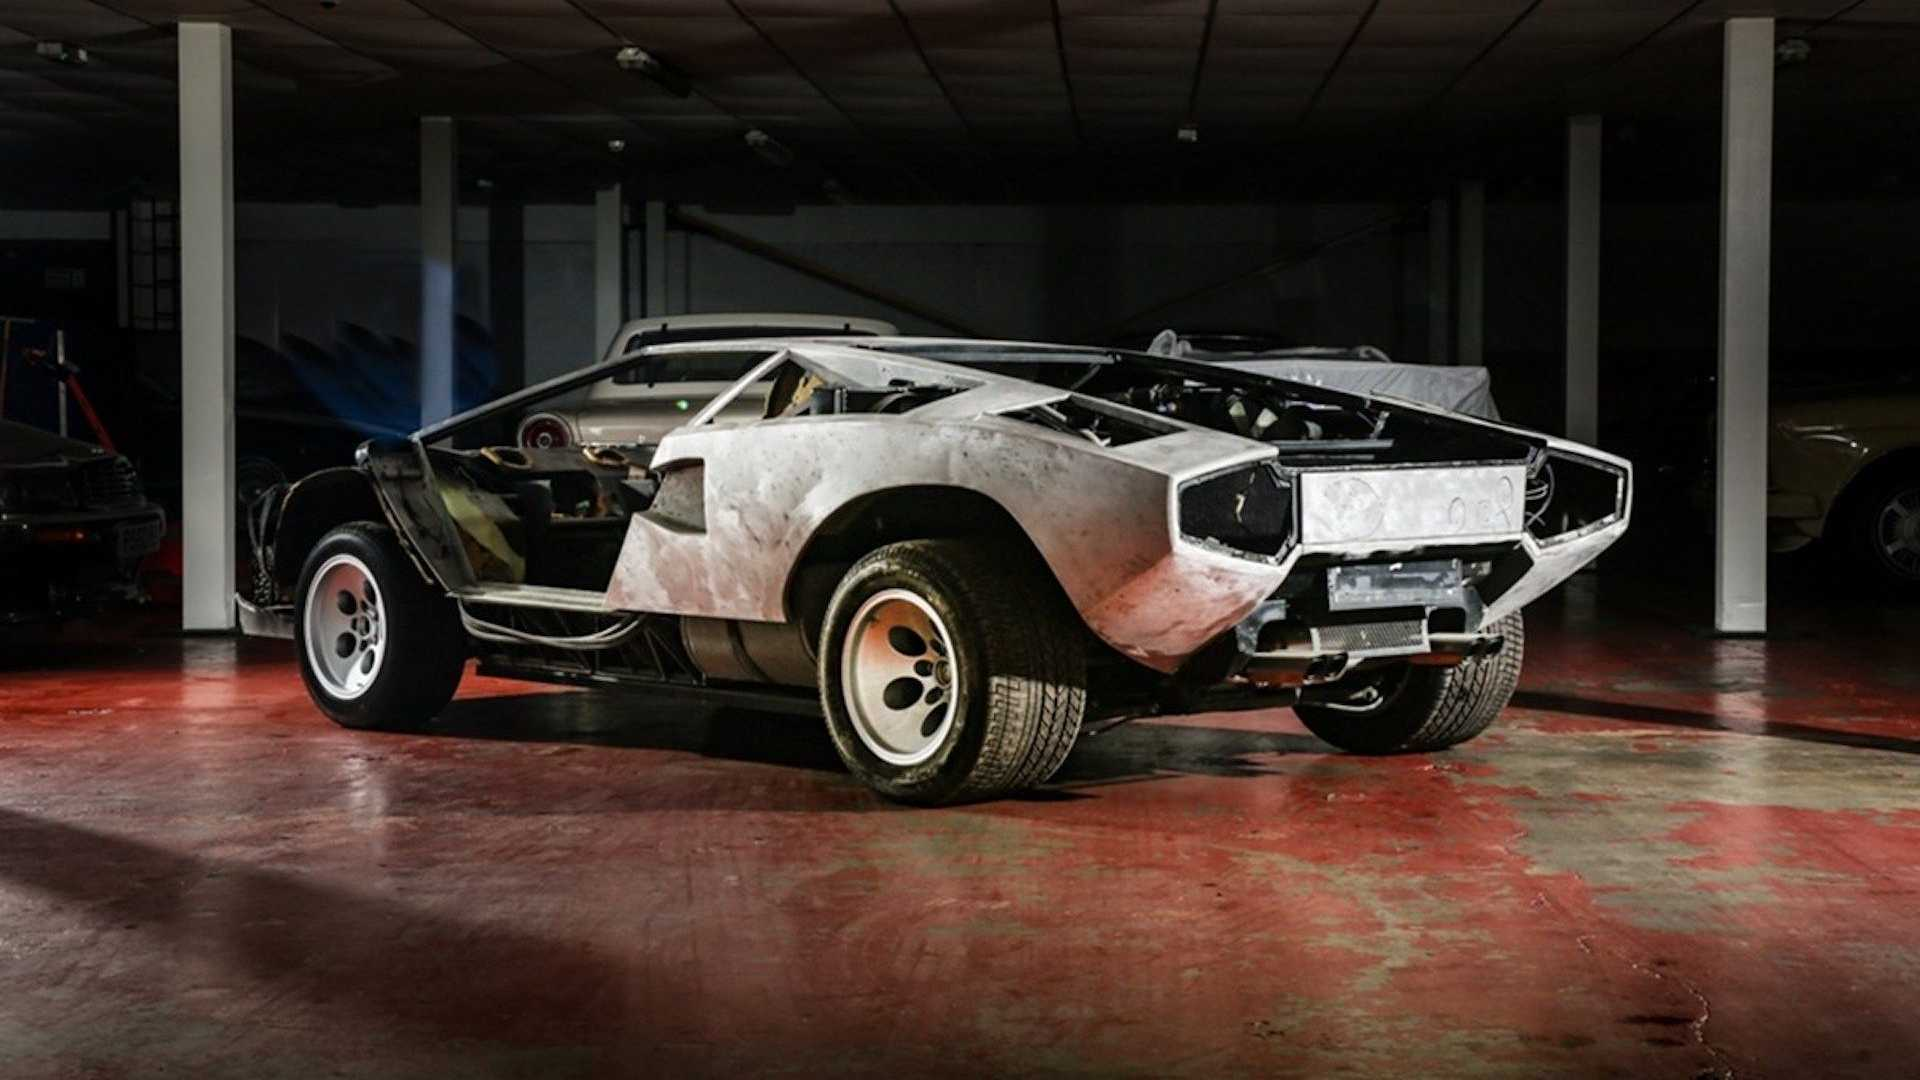 Cheapest Classic Lamborghini Countach Up For Sale But There's A Catch